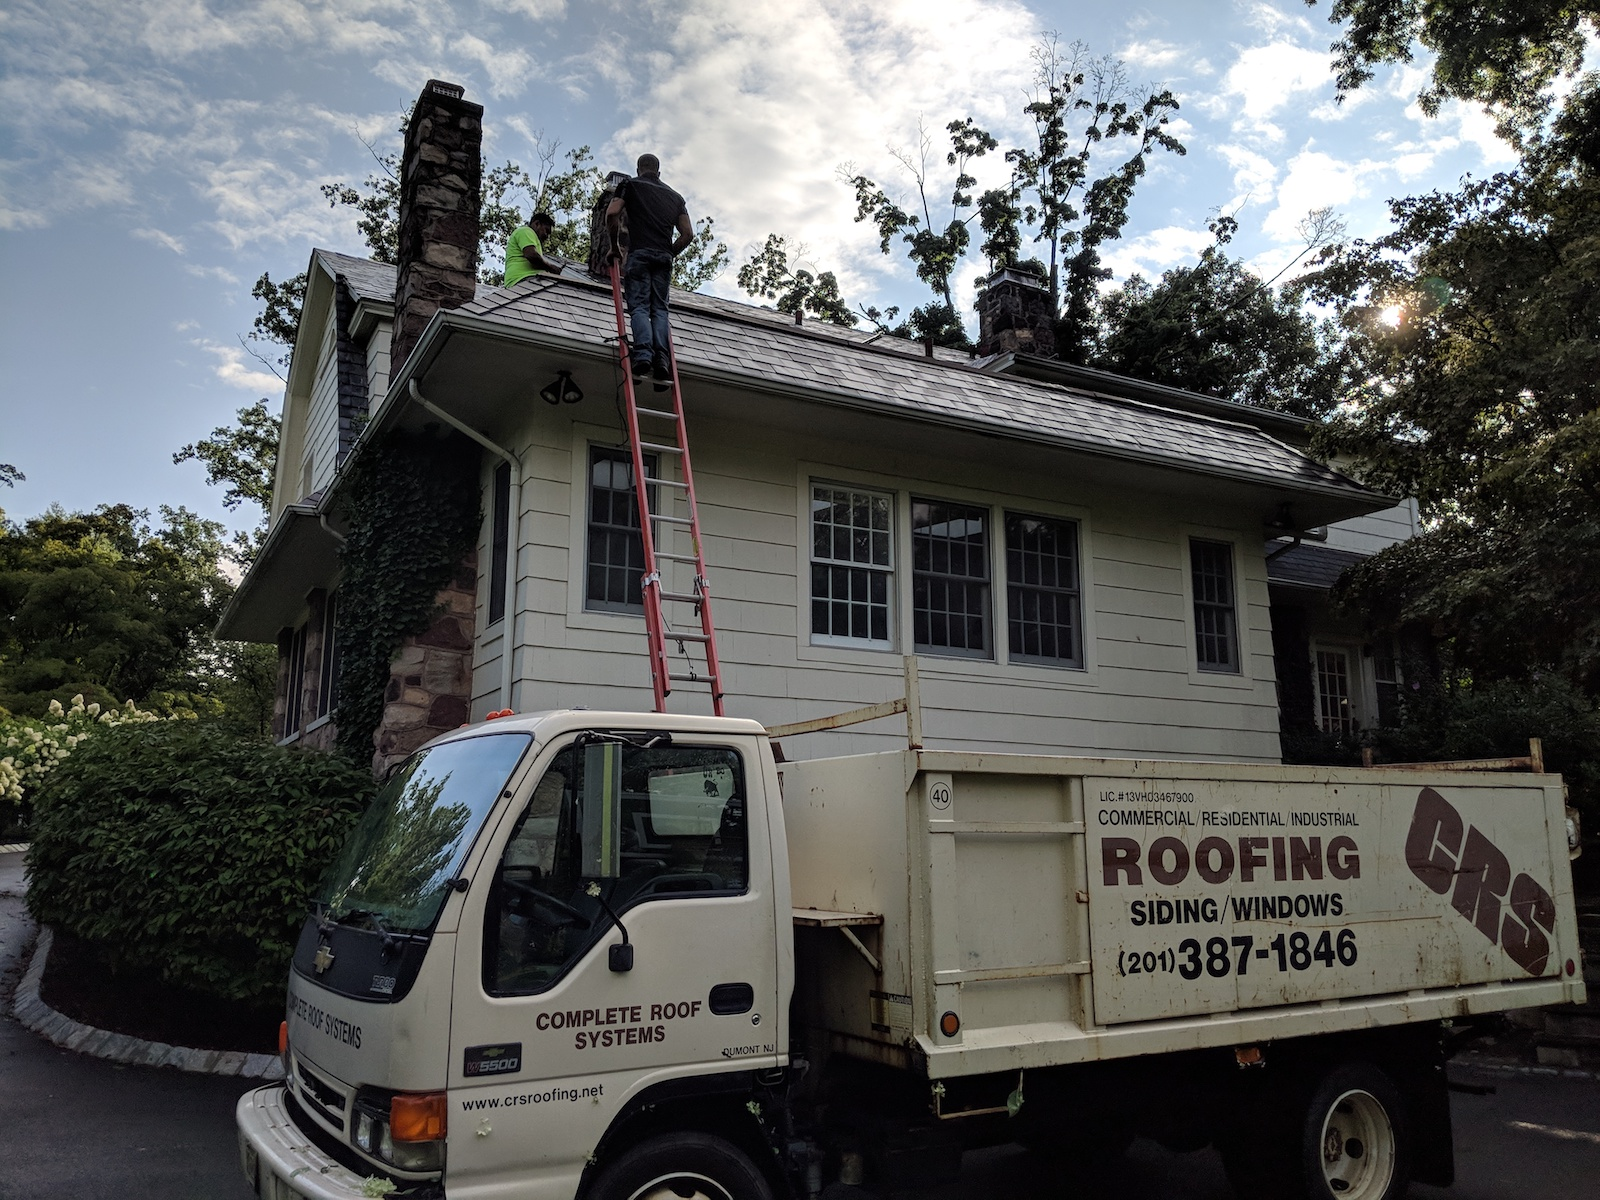 4 Things You Need to Know About Roofing in NJ